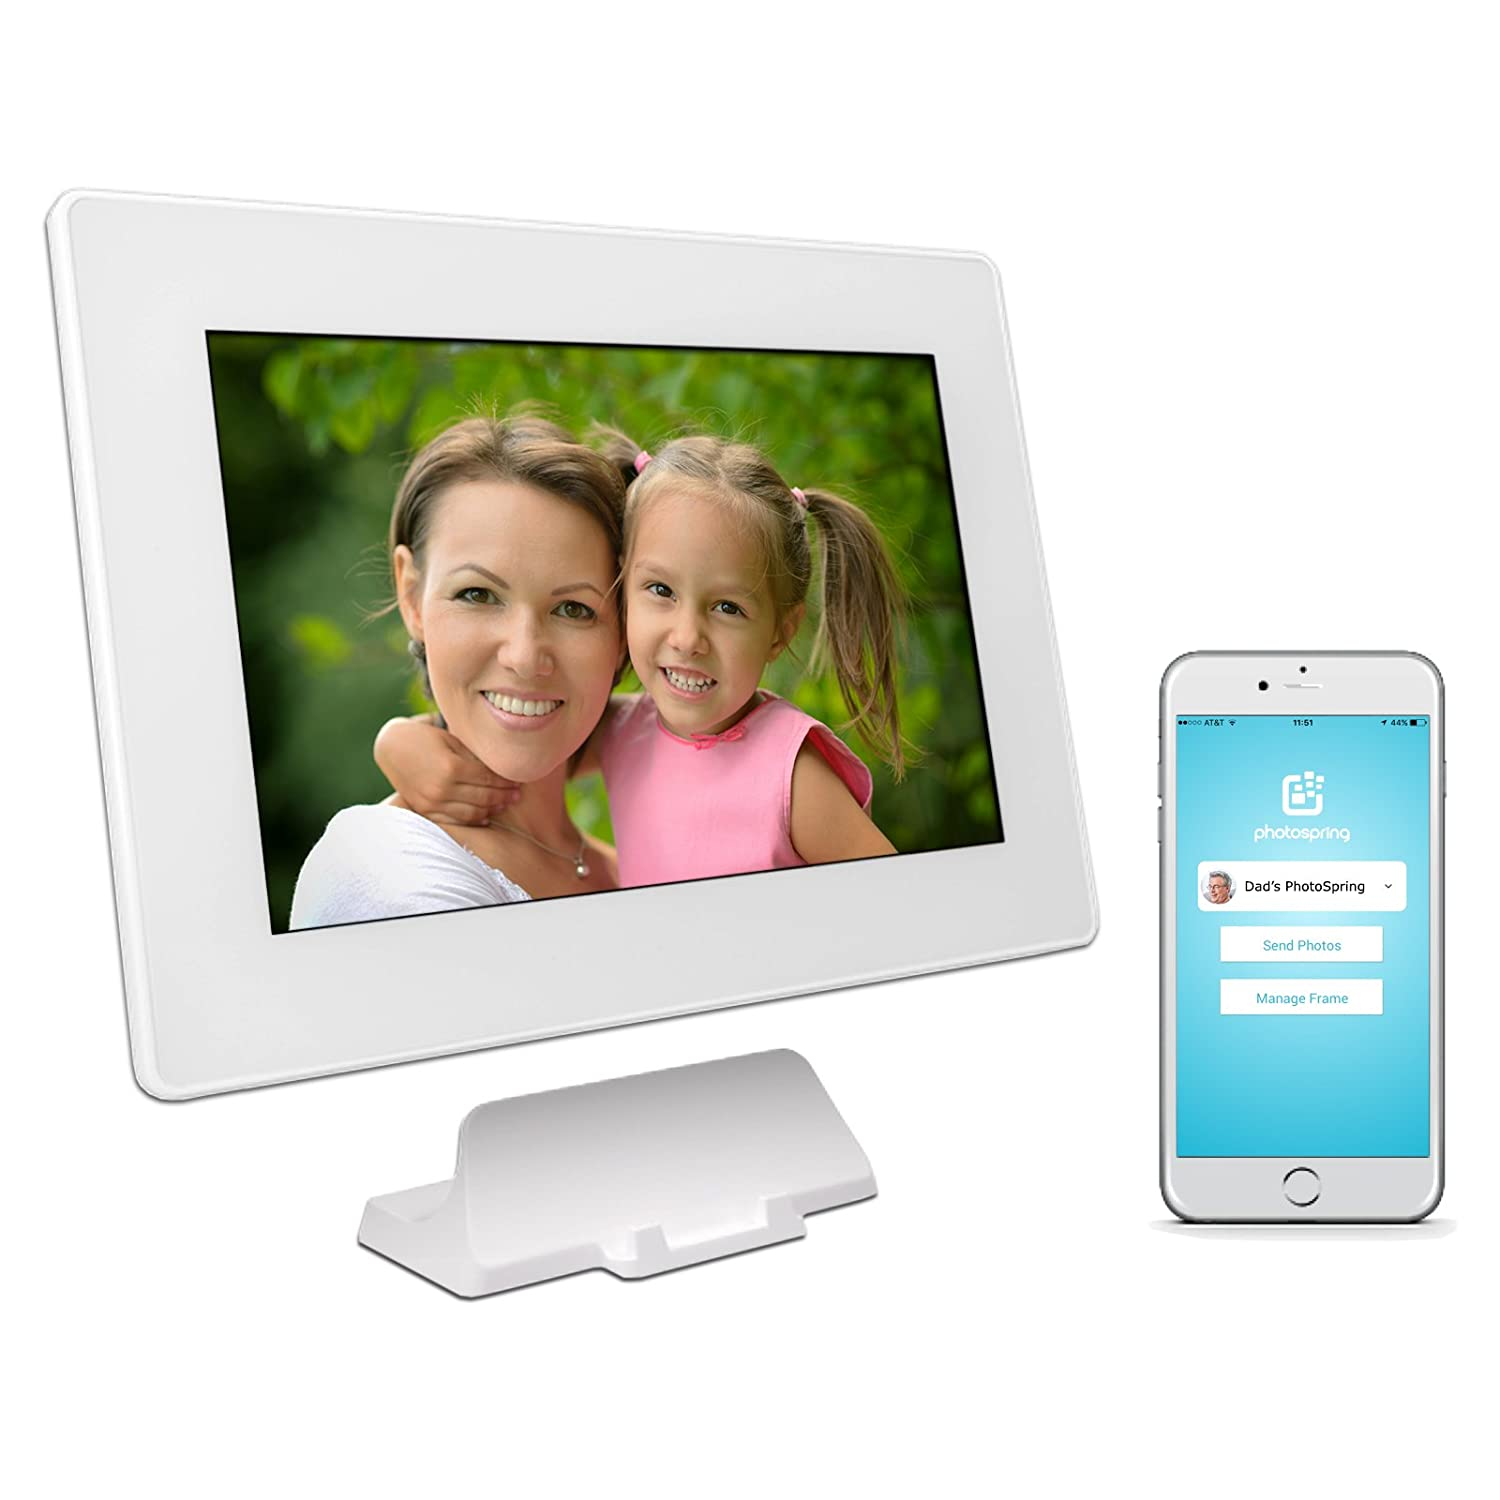 3 great digital photo frames perfect for any home komando photospring 16gb 10in wifi digital photo frame for iphone android 149 on amazon jeuxipadfo Gallery